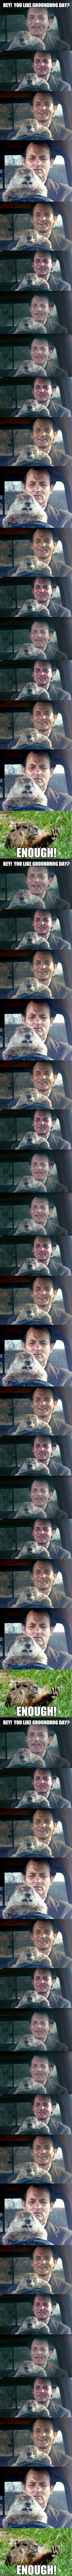 Groundhog day isn't on tv. | image tagged in groundhog day | made w/ Imgflip meme maker